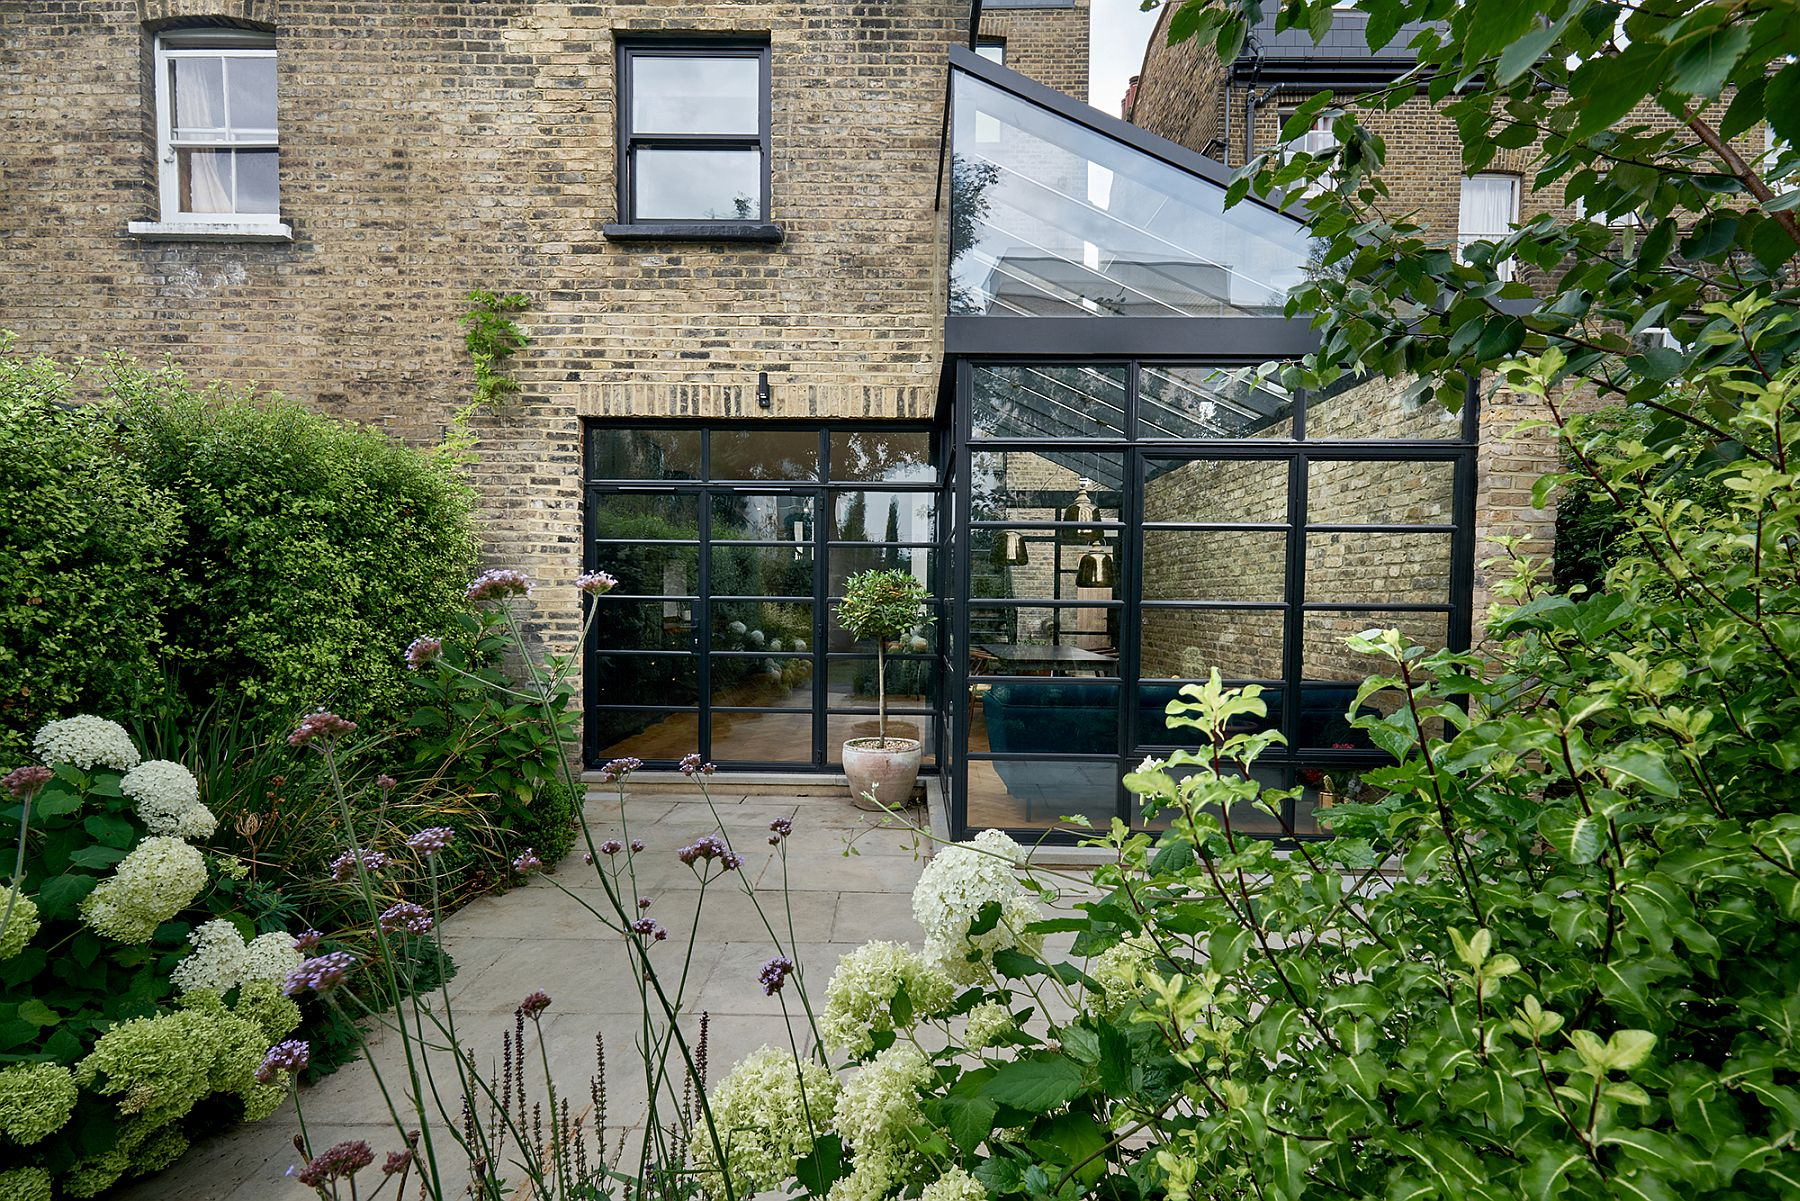 Garden outside becomes a part of the new dining room and kitchen thanks to the glassy extension